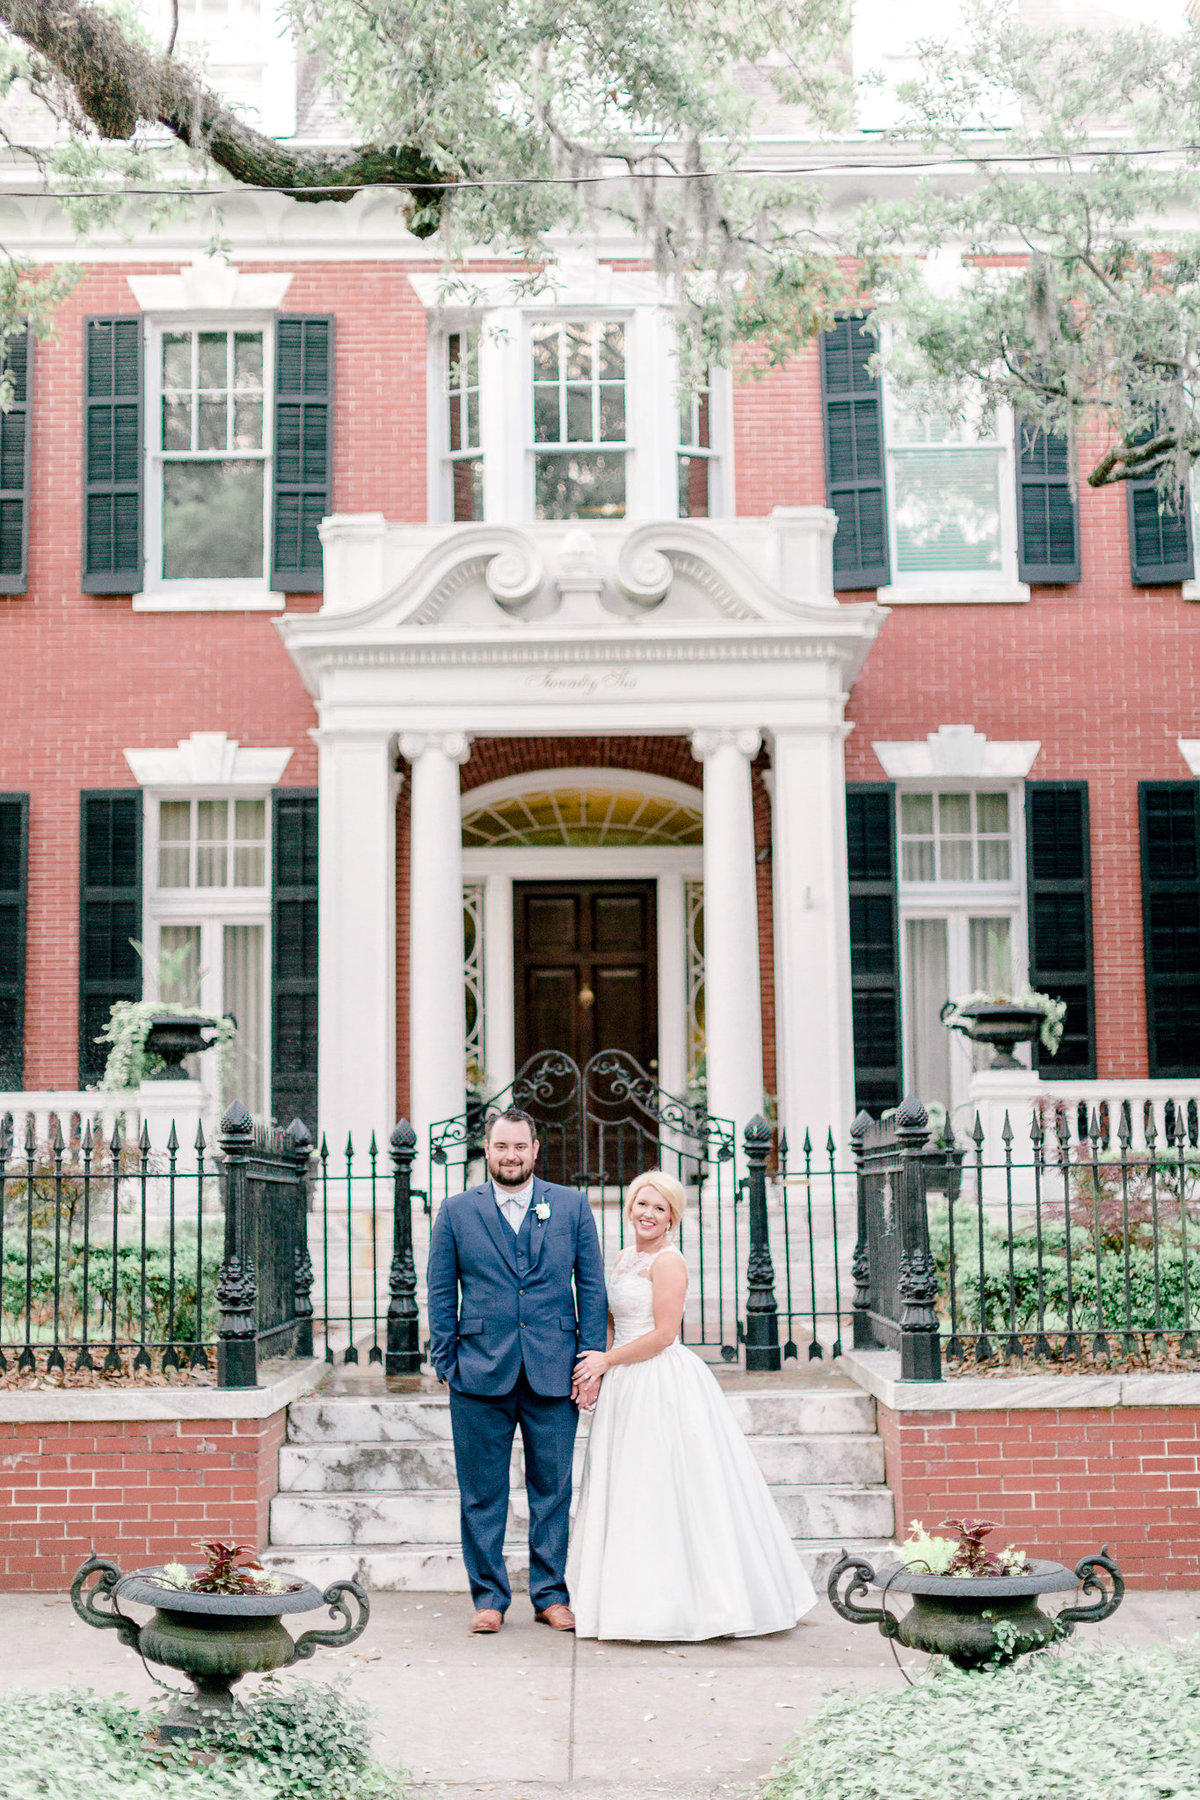 Savannah-Georgia-Wedding-Photographer-Holly-Felts-Photography-Wilmon-Wedding-462